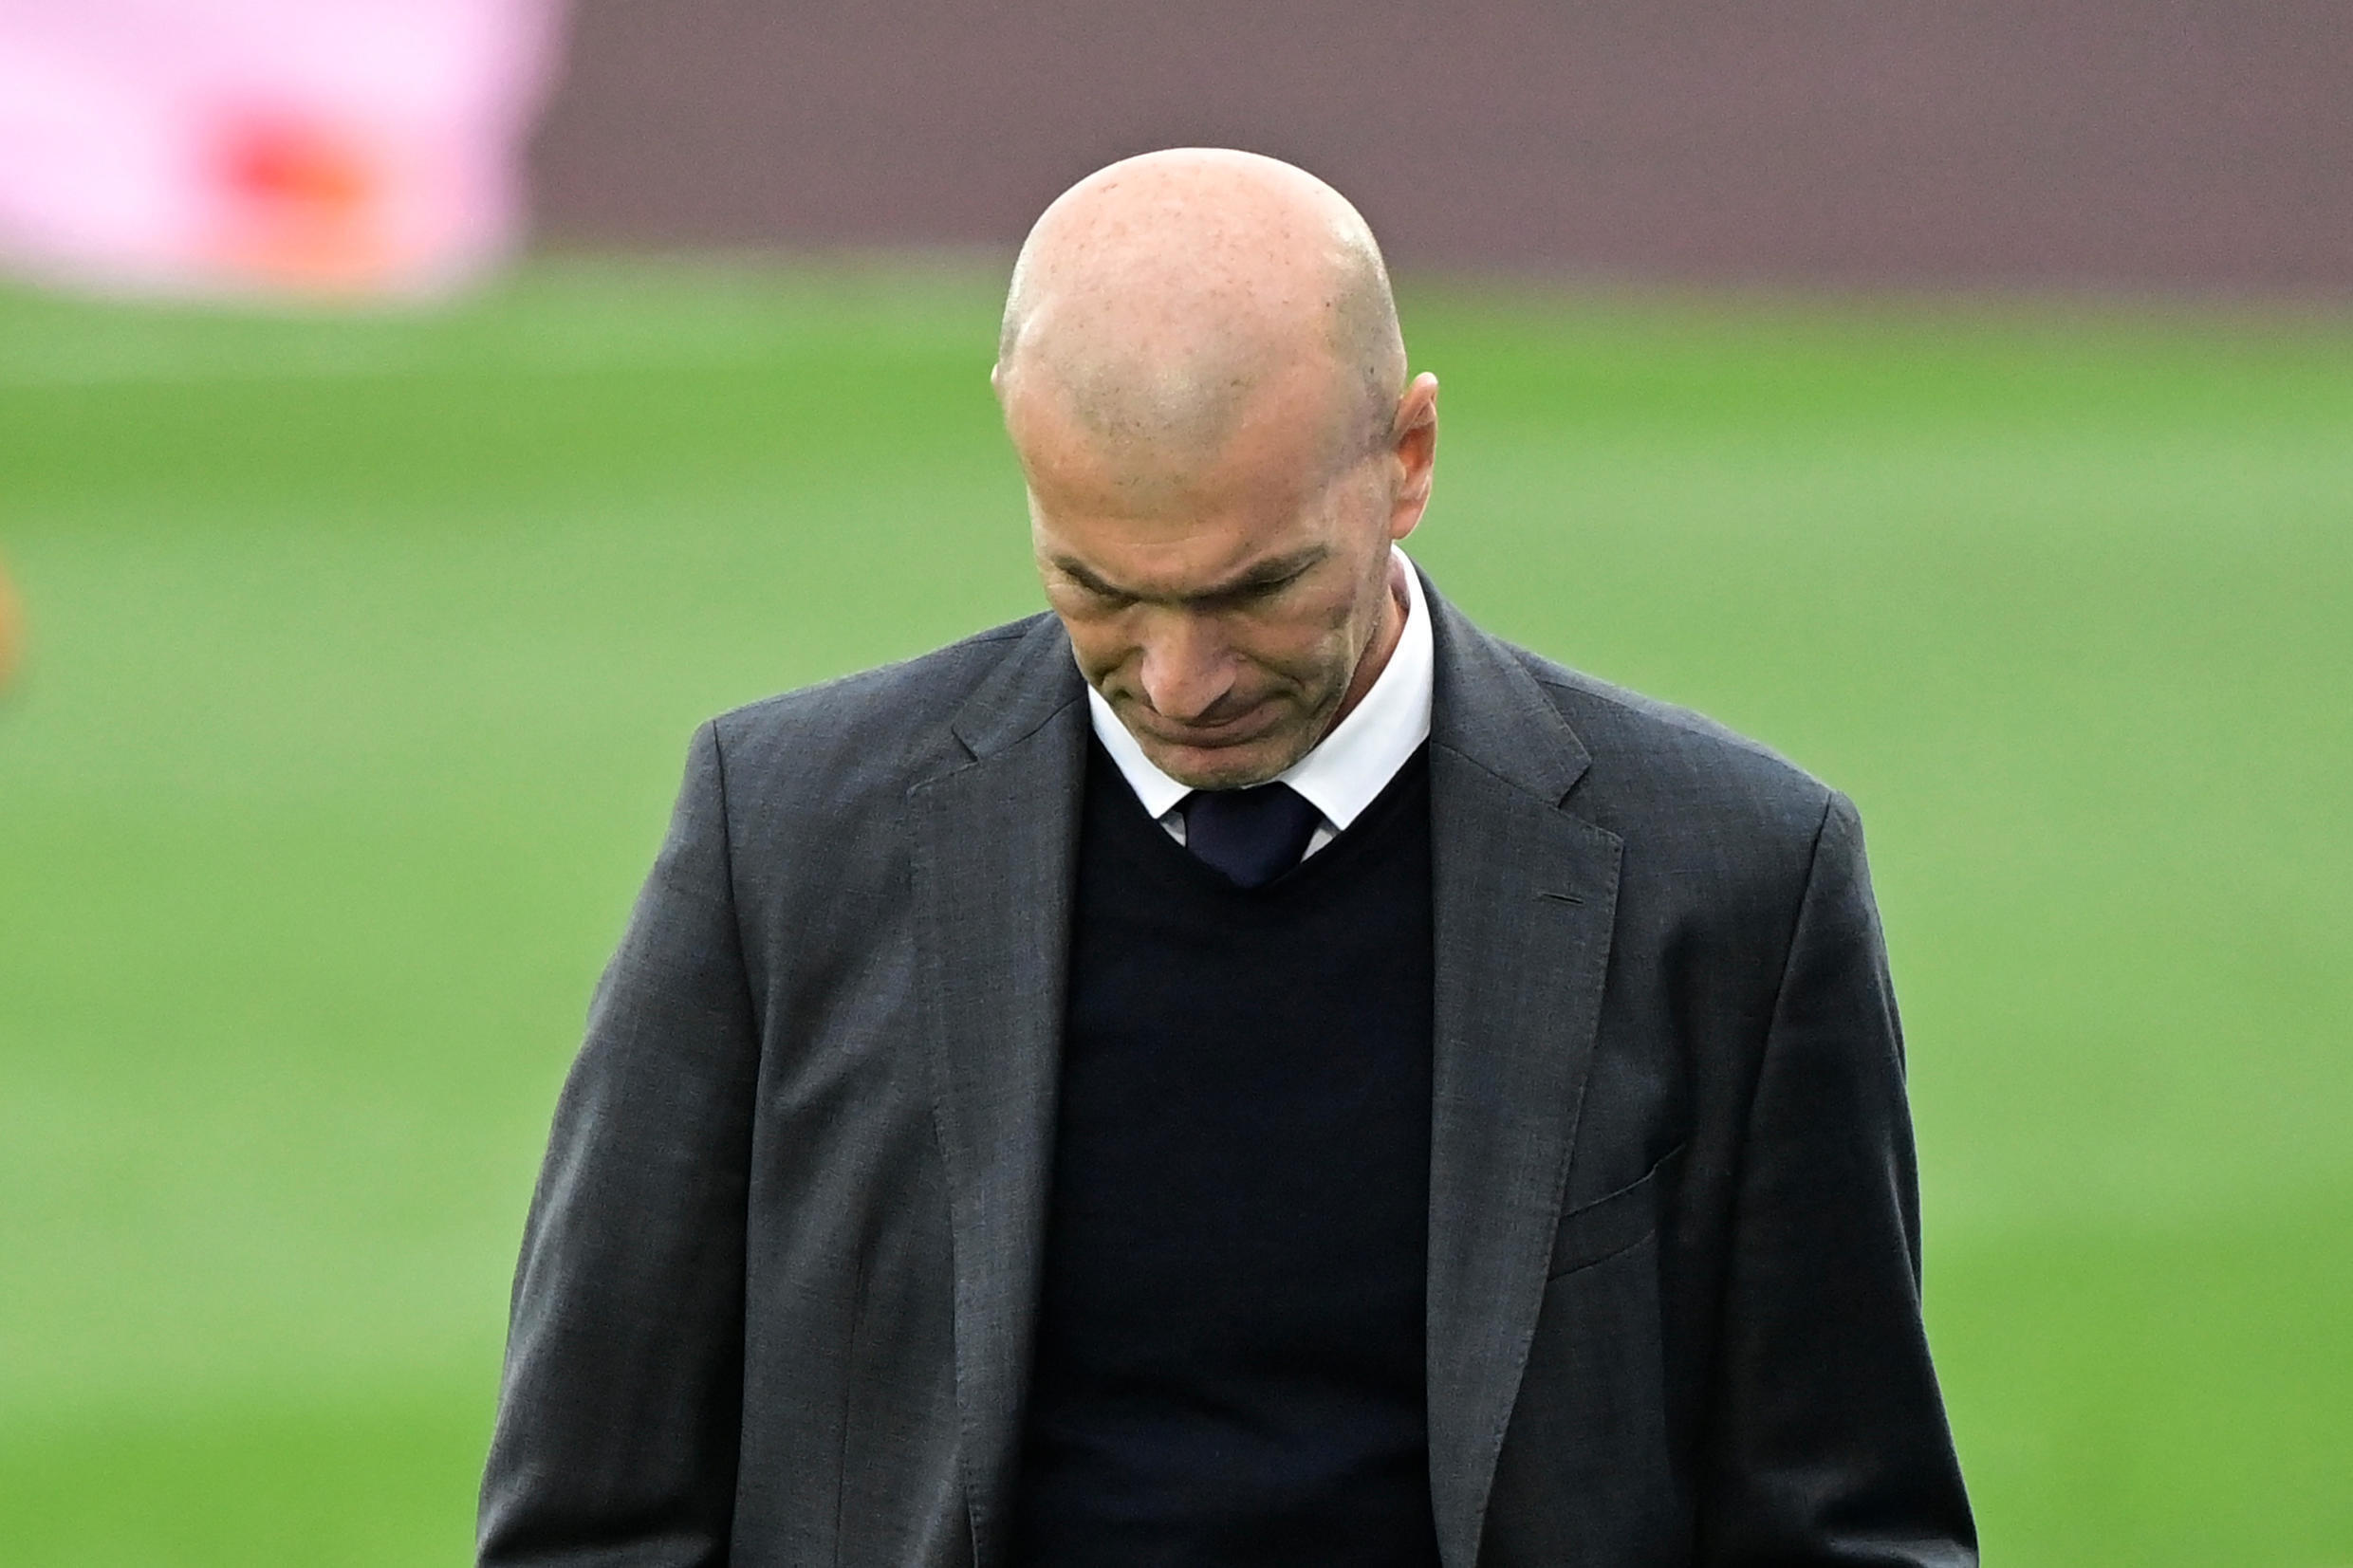 Zinedine Zidane has resigned as Real Madrid manager with immediate effect, according to media reports